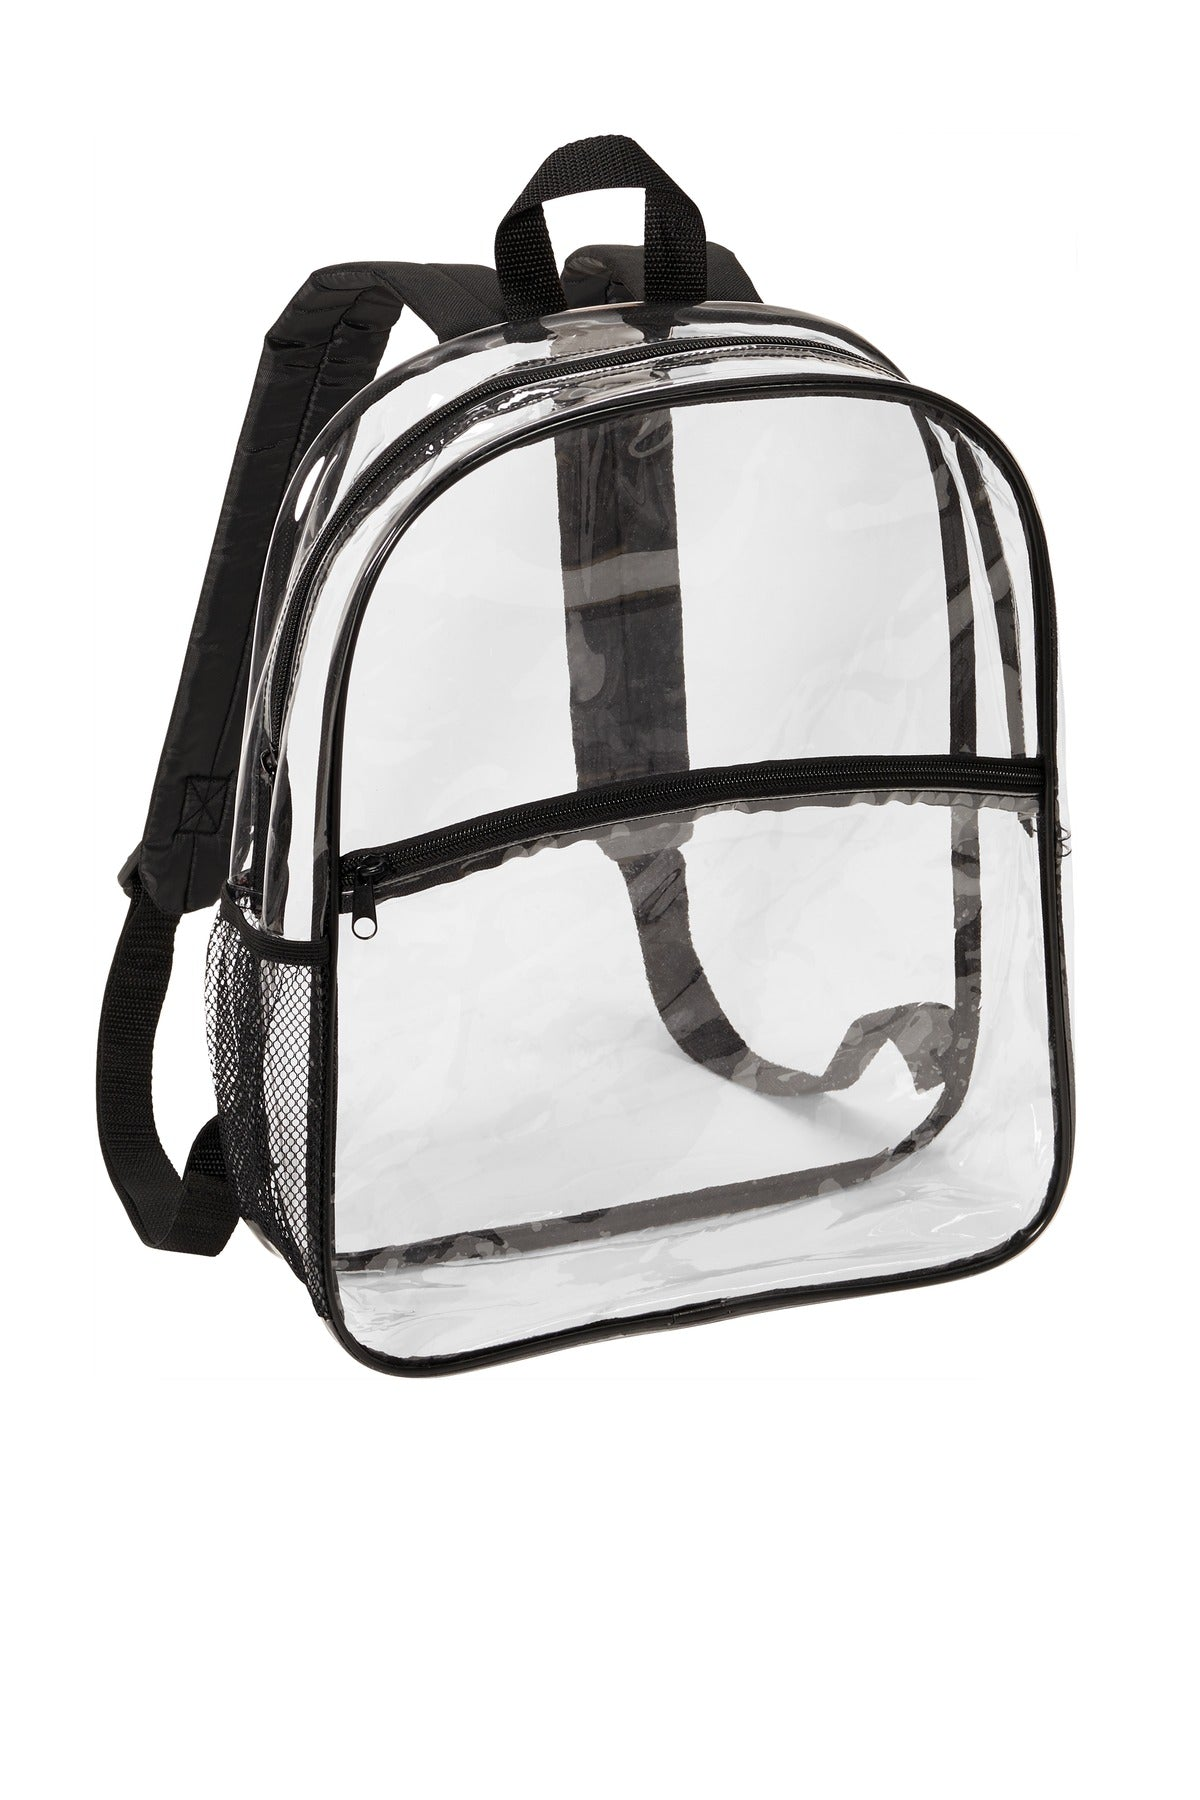 Port Authority BG230 Clear Backpack - Clear Black - HIT A Double